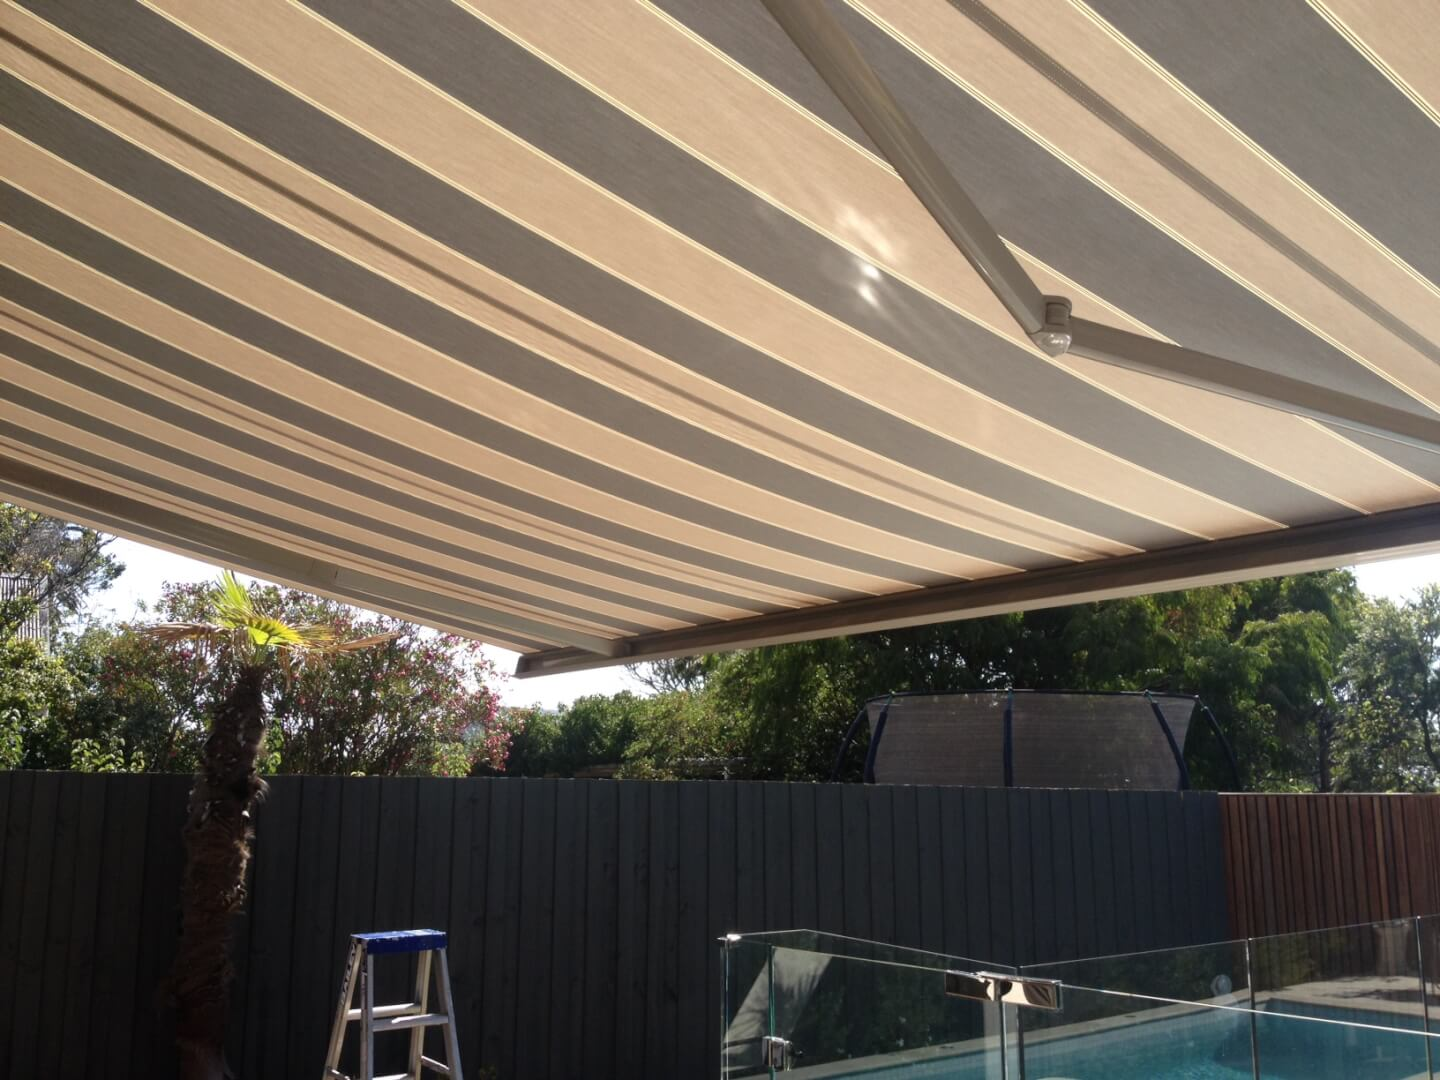 Folding Arm Awning Mornington